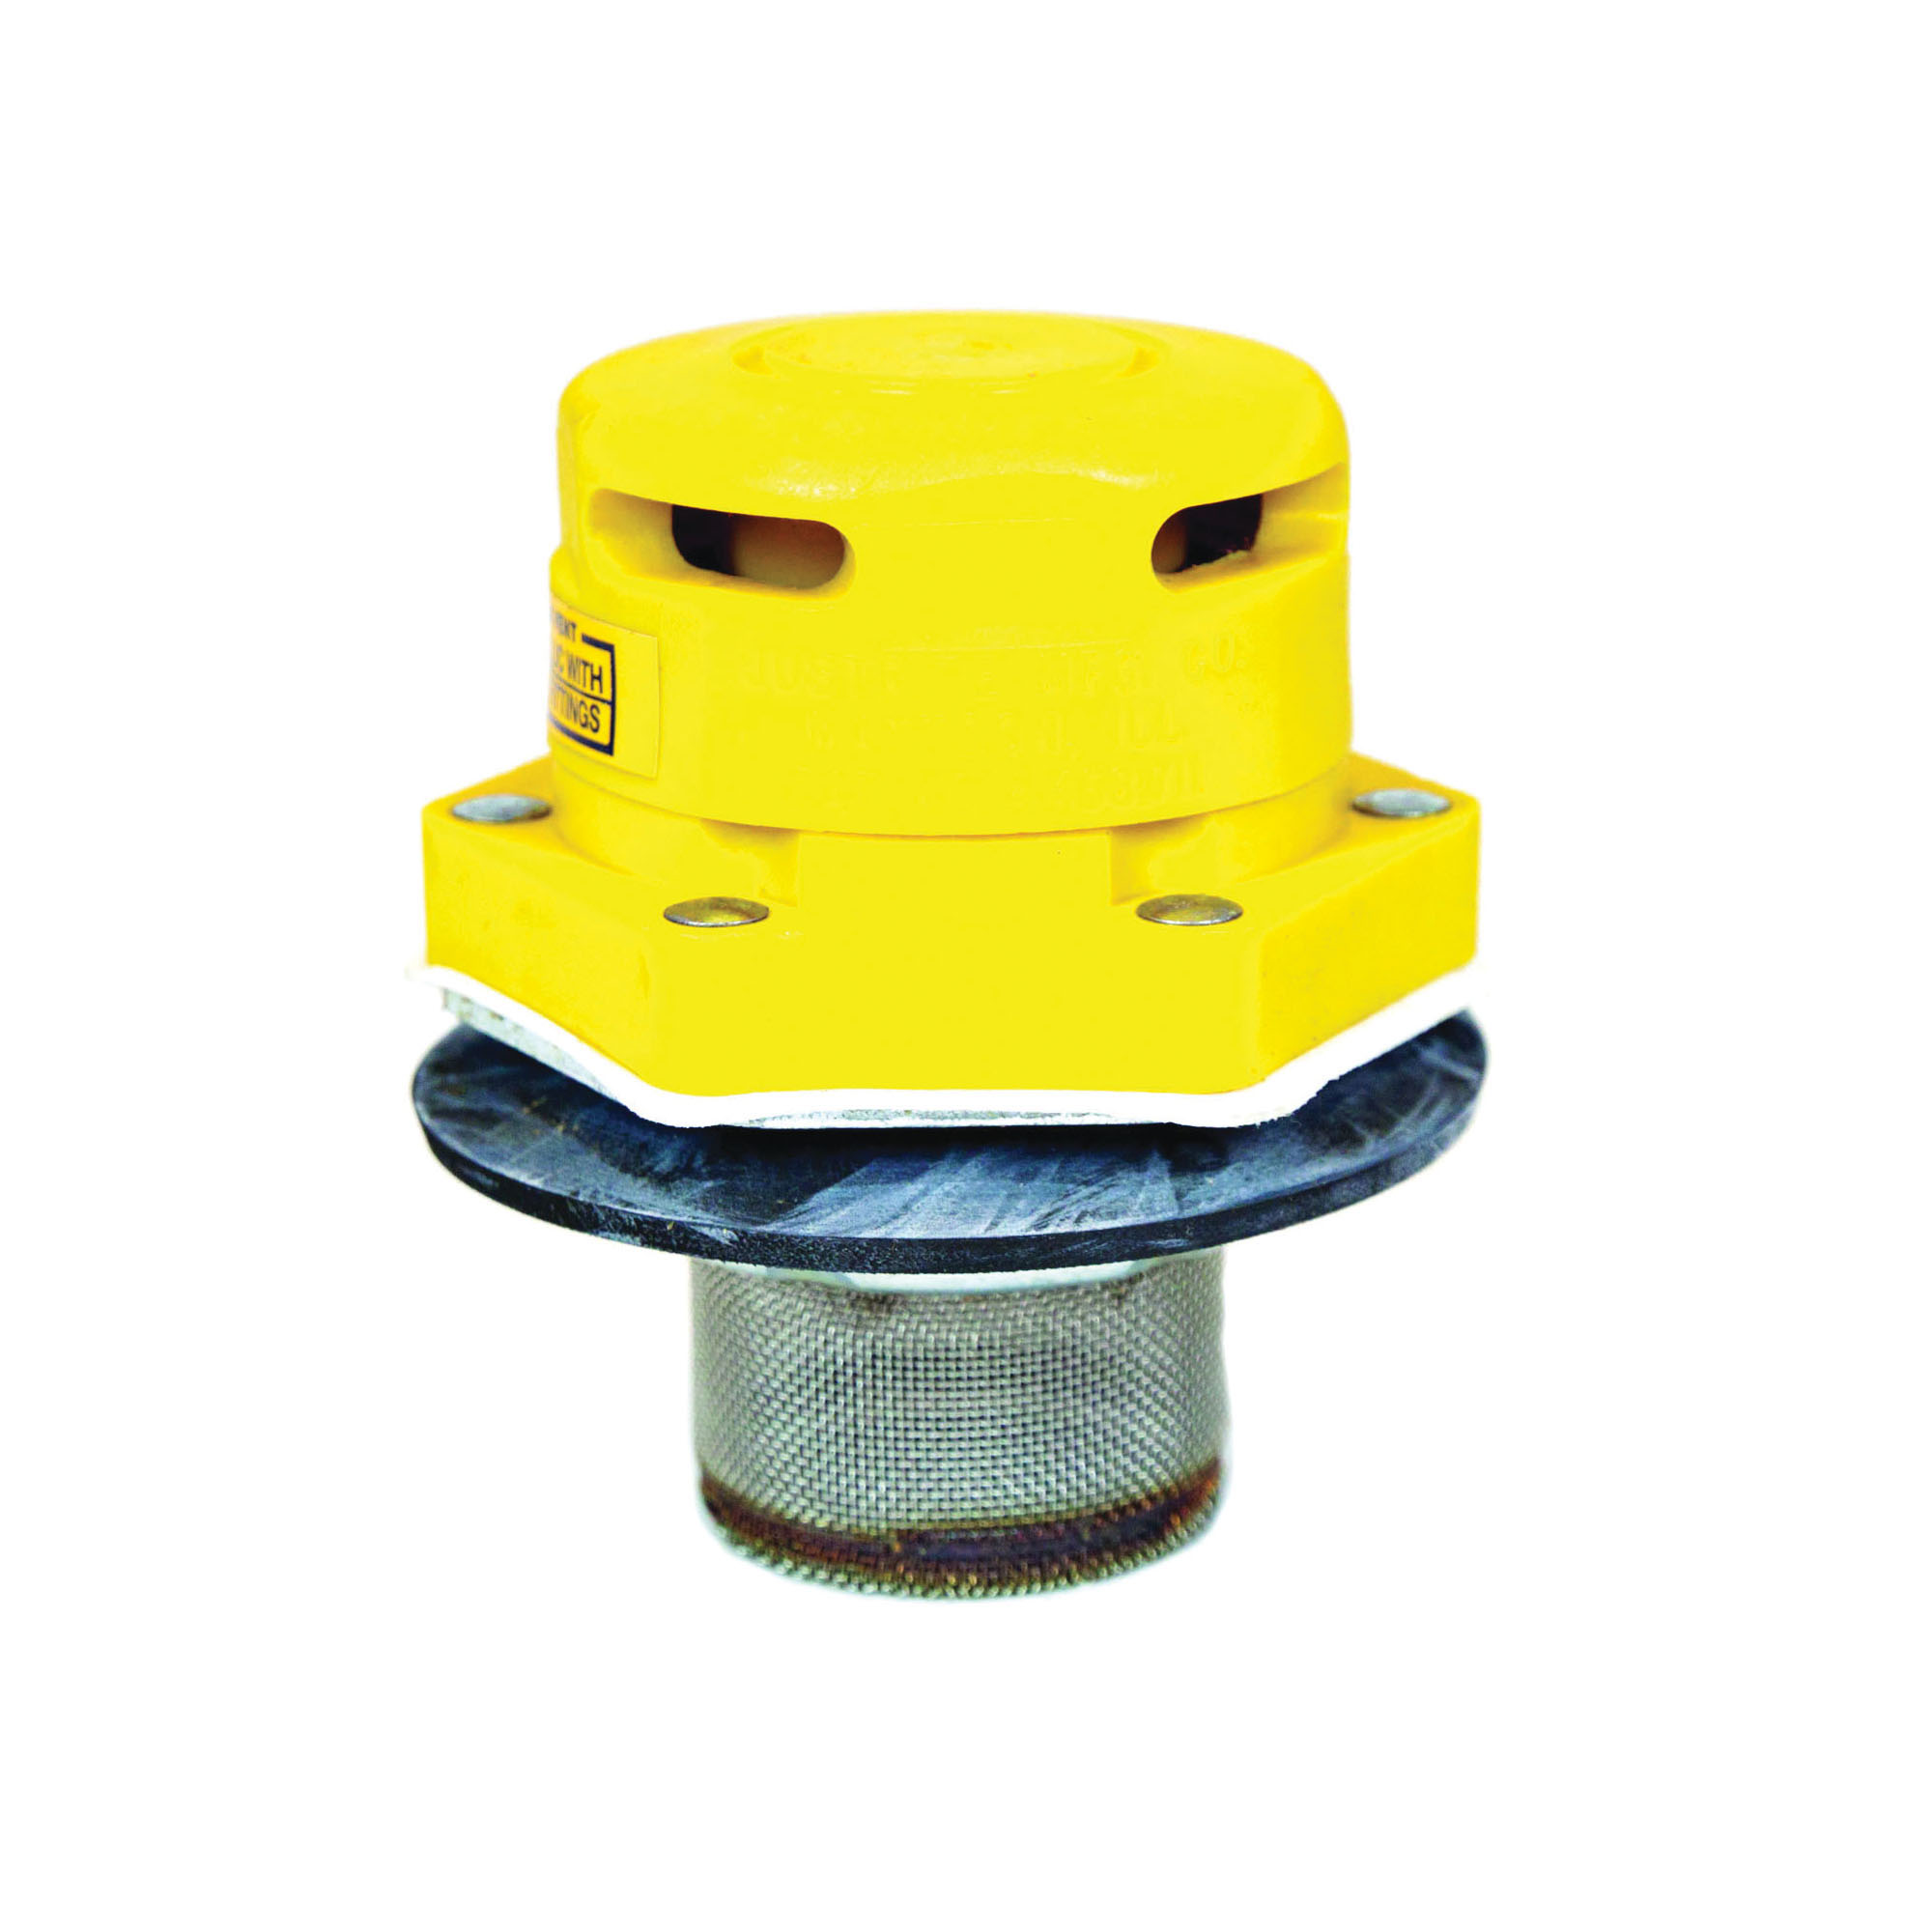 Justrite® 08005 Vertical Drum Vent, 2 in NPT/NPS Bung, Plated Steel Flame Arrestor, 31 mm H x 76 mm W x 86 mm D, For Use With 205 L Petroleum Based Solvent Drums, Polyethylene, Yellow